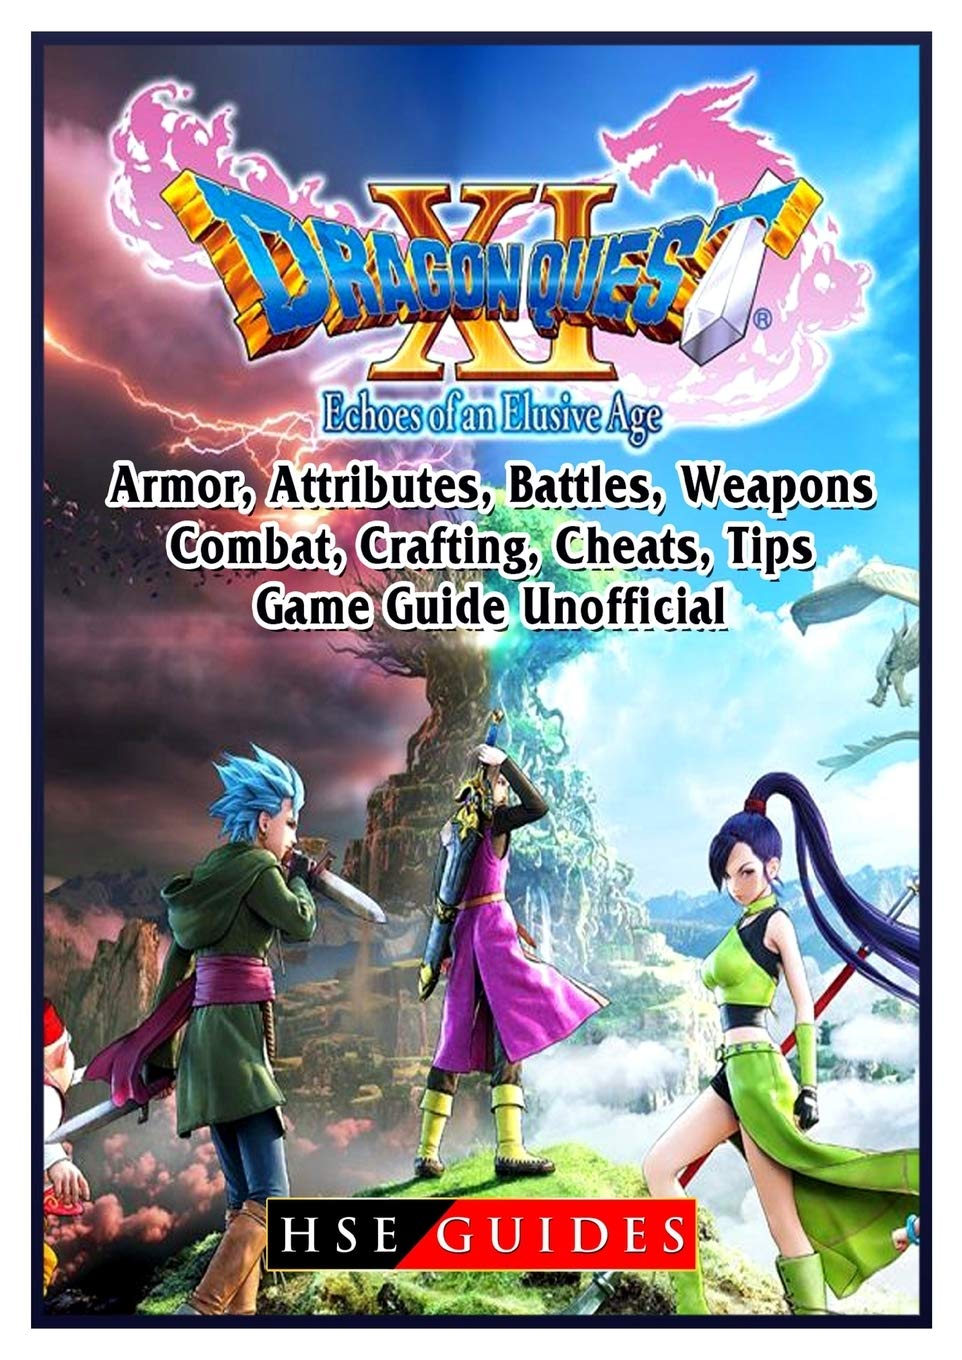 Dragon Quest Xi Echoes Of An Elusive Age Armor Attributes Battles Weapons Combat Crafting Cheats Tips Game Guide Unofficial Guides Hse 9780359687633 Amazon Com Books Here are the best weapons, how to get them, and their stats. dragon quest xi echoes of an elusive